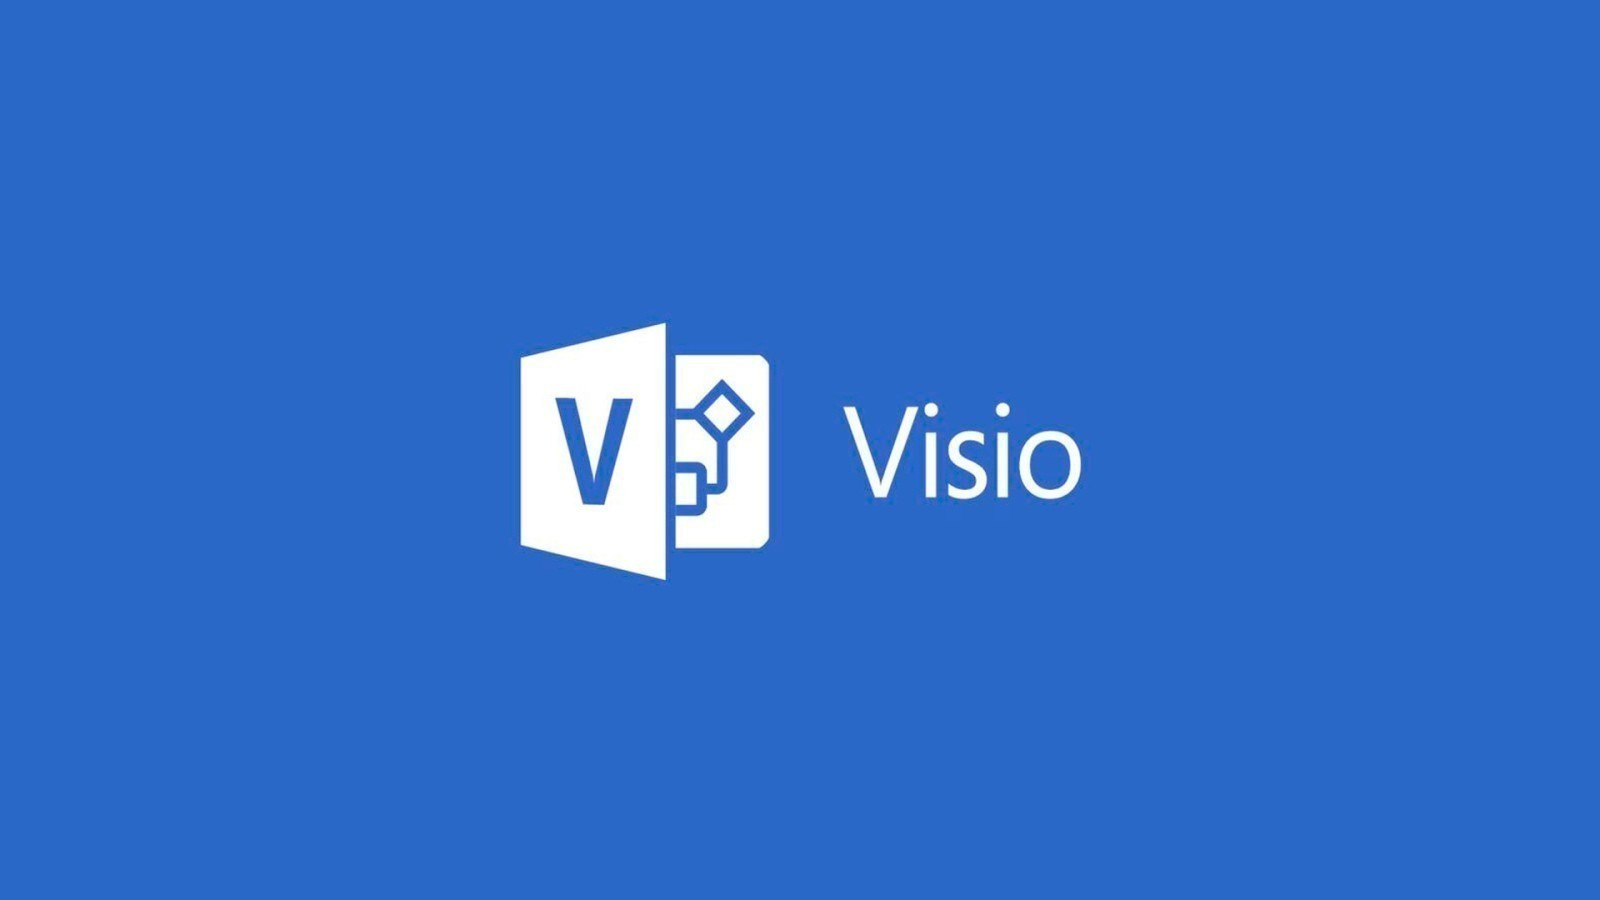 microsoft announced the general availability of visio online today which has been in public preview since november the web app allows users to view and - Ms Visio Online Free